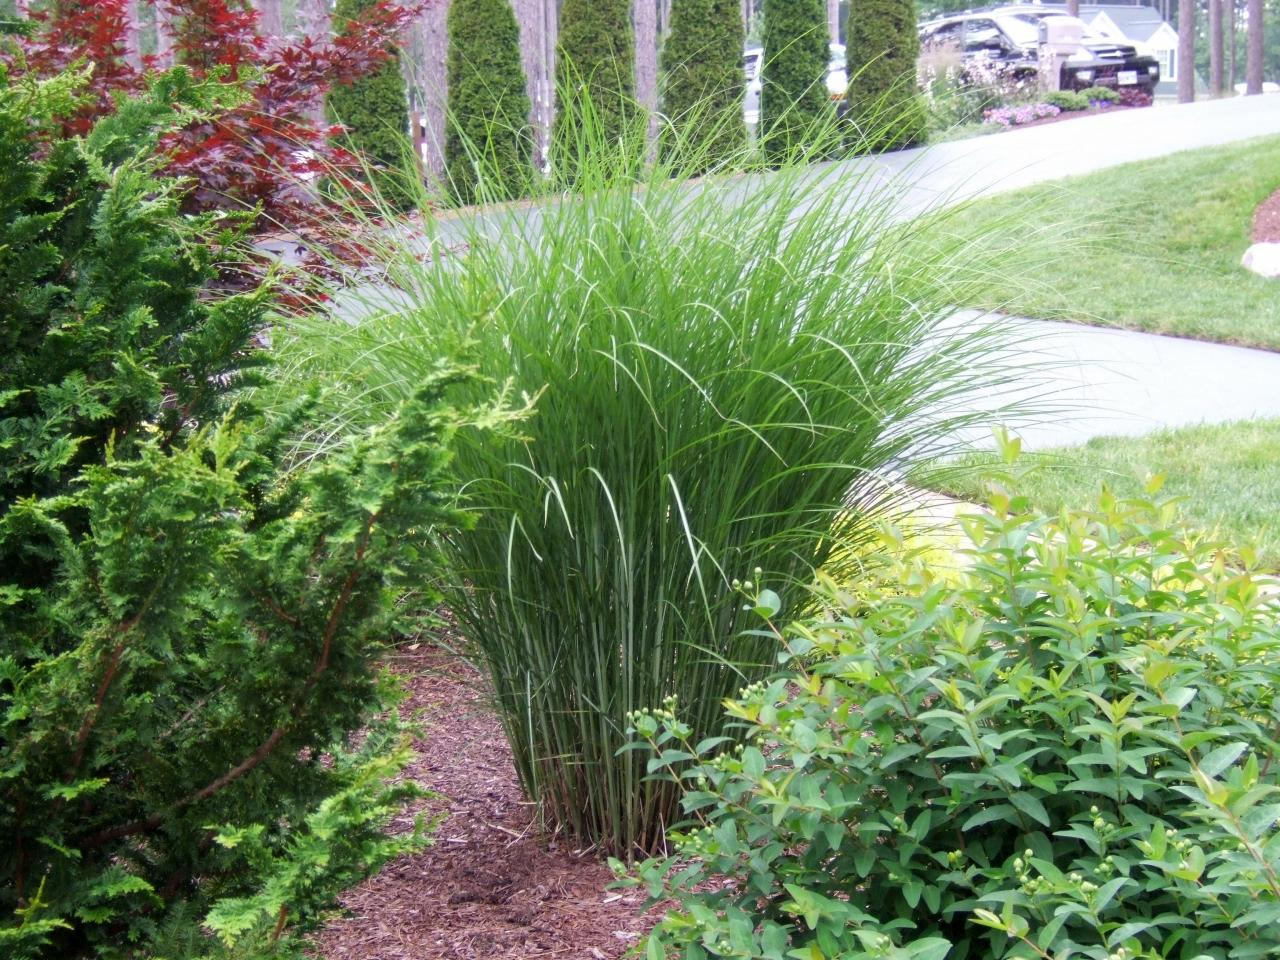 Types of ornamental grasses diy garden projects for Full sun ornamental grass